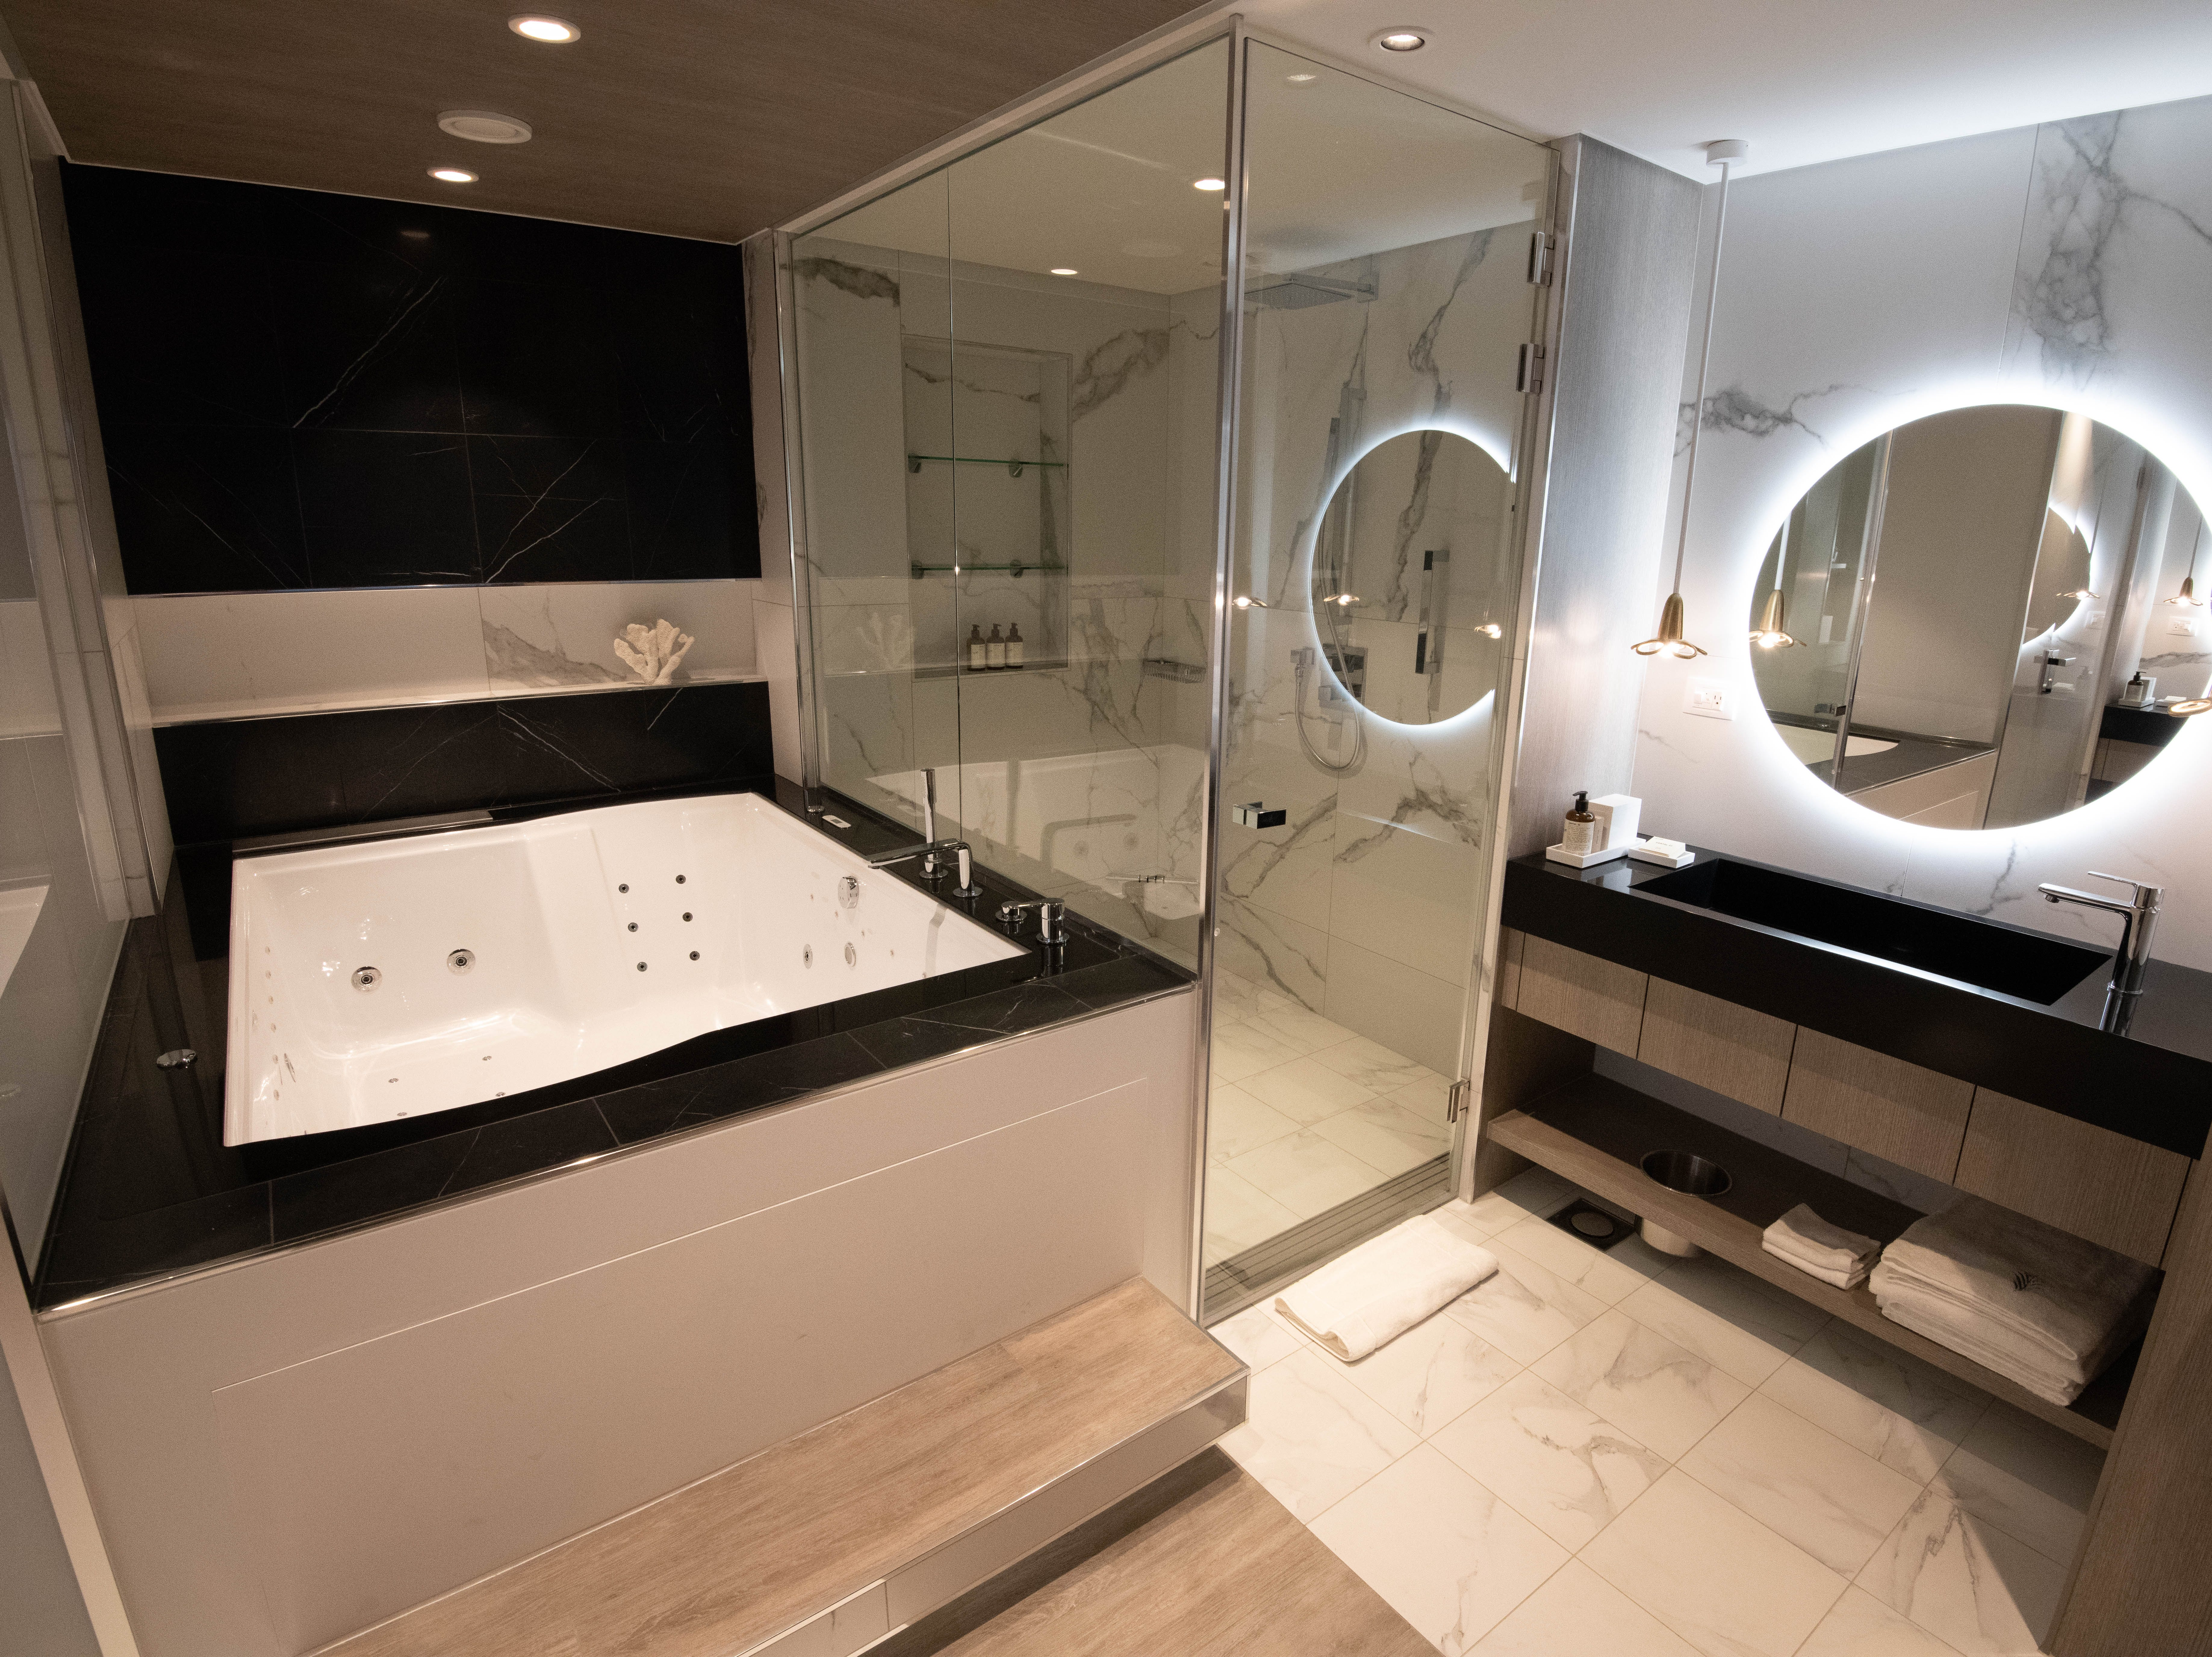 Iconic Suite master bathrooms feature massive whirlpool tubs, marble-lined showers and two sink areas.